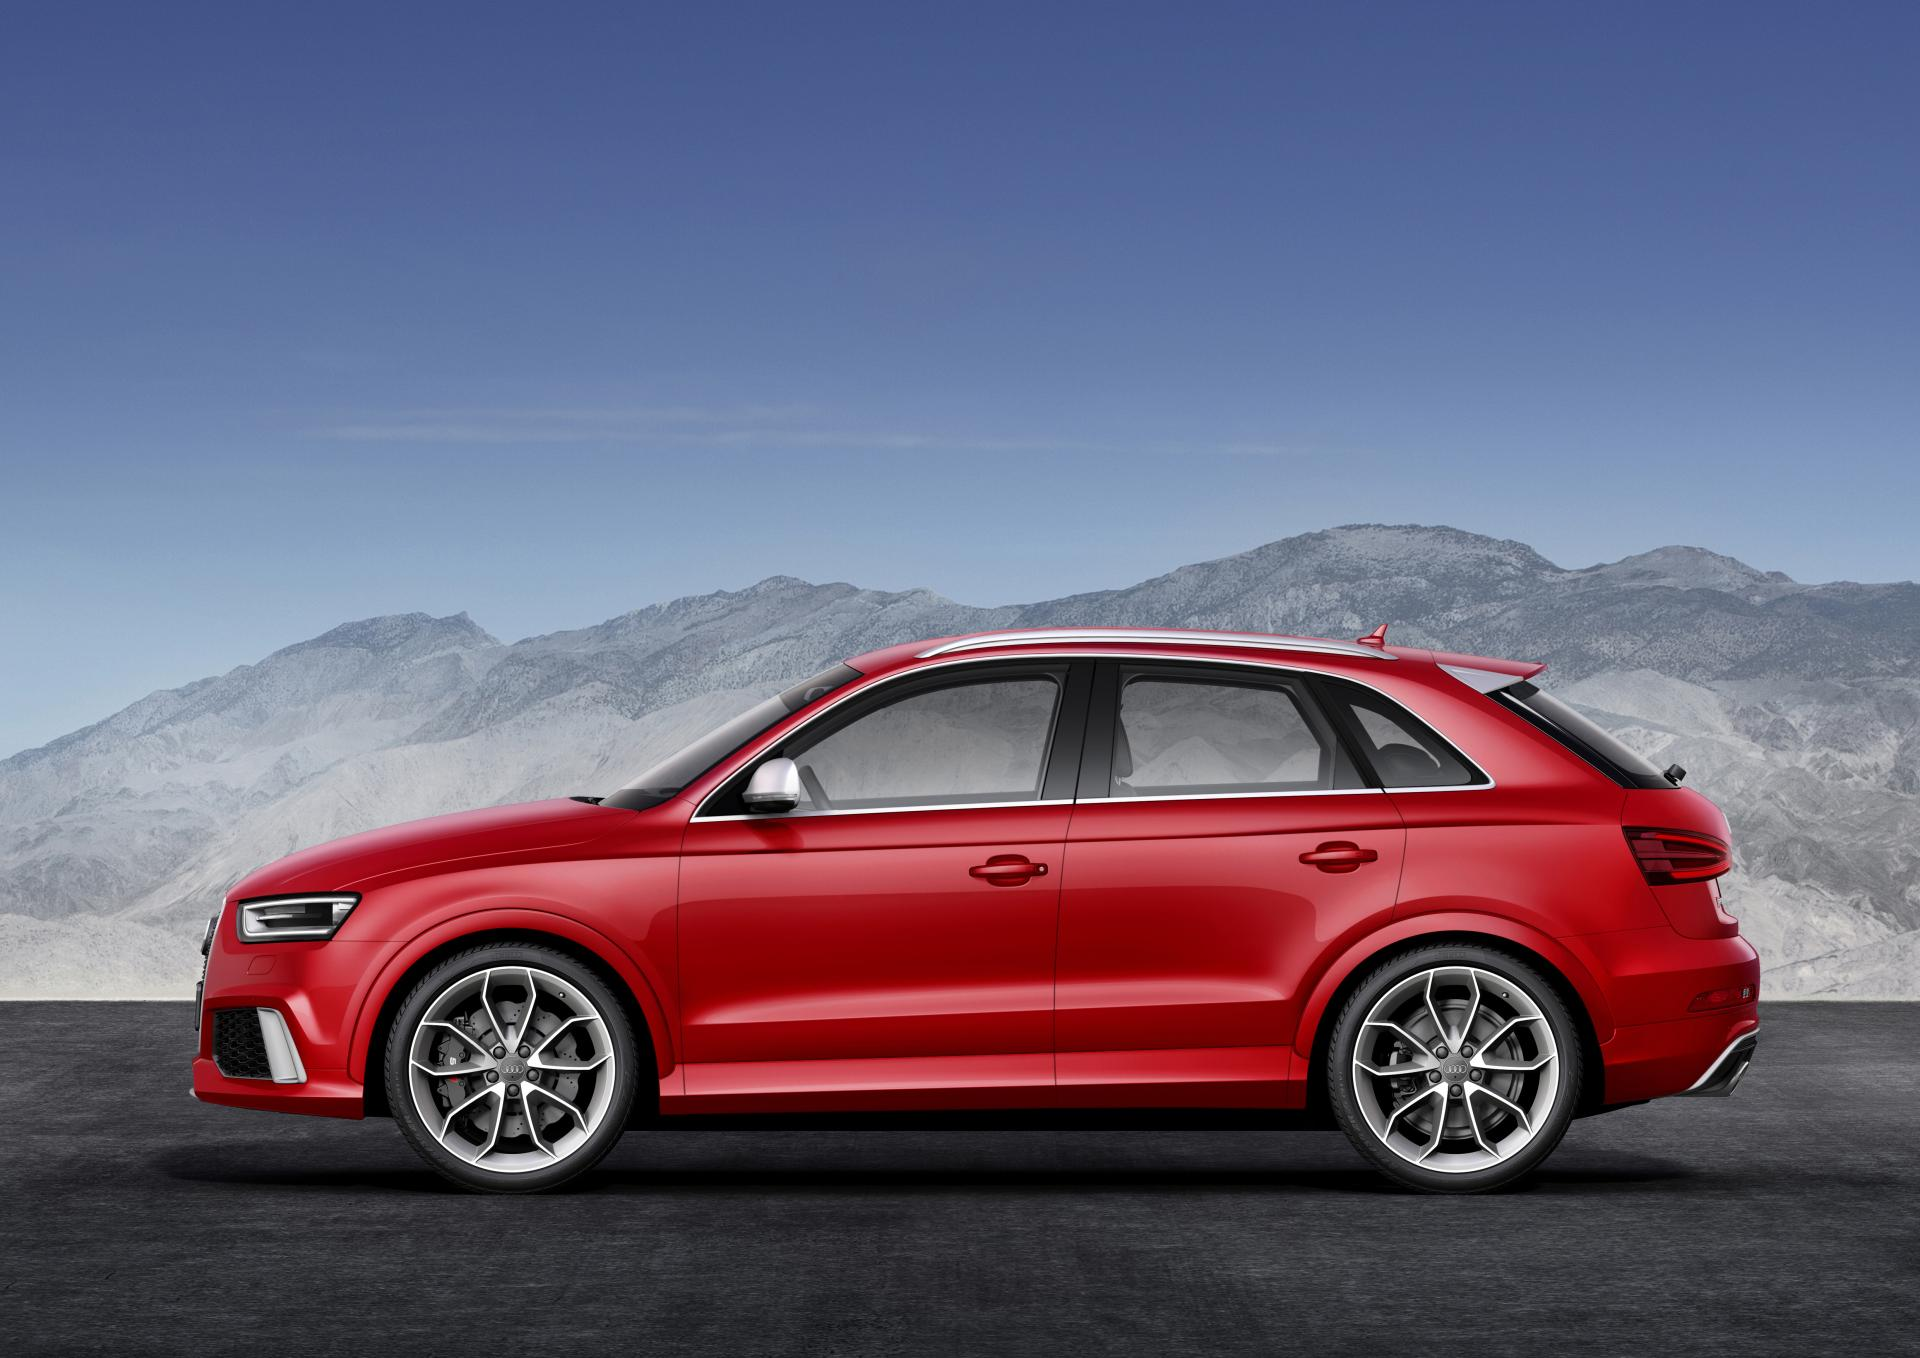 2014 audi rs q3 technical specifications and data engine dimensions and mechanical details. Black Bedroom Furniture Sets. Home Design Ideas